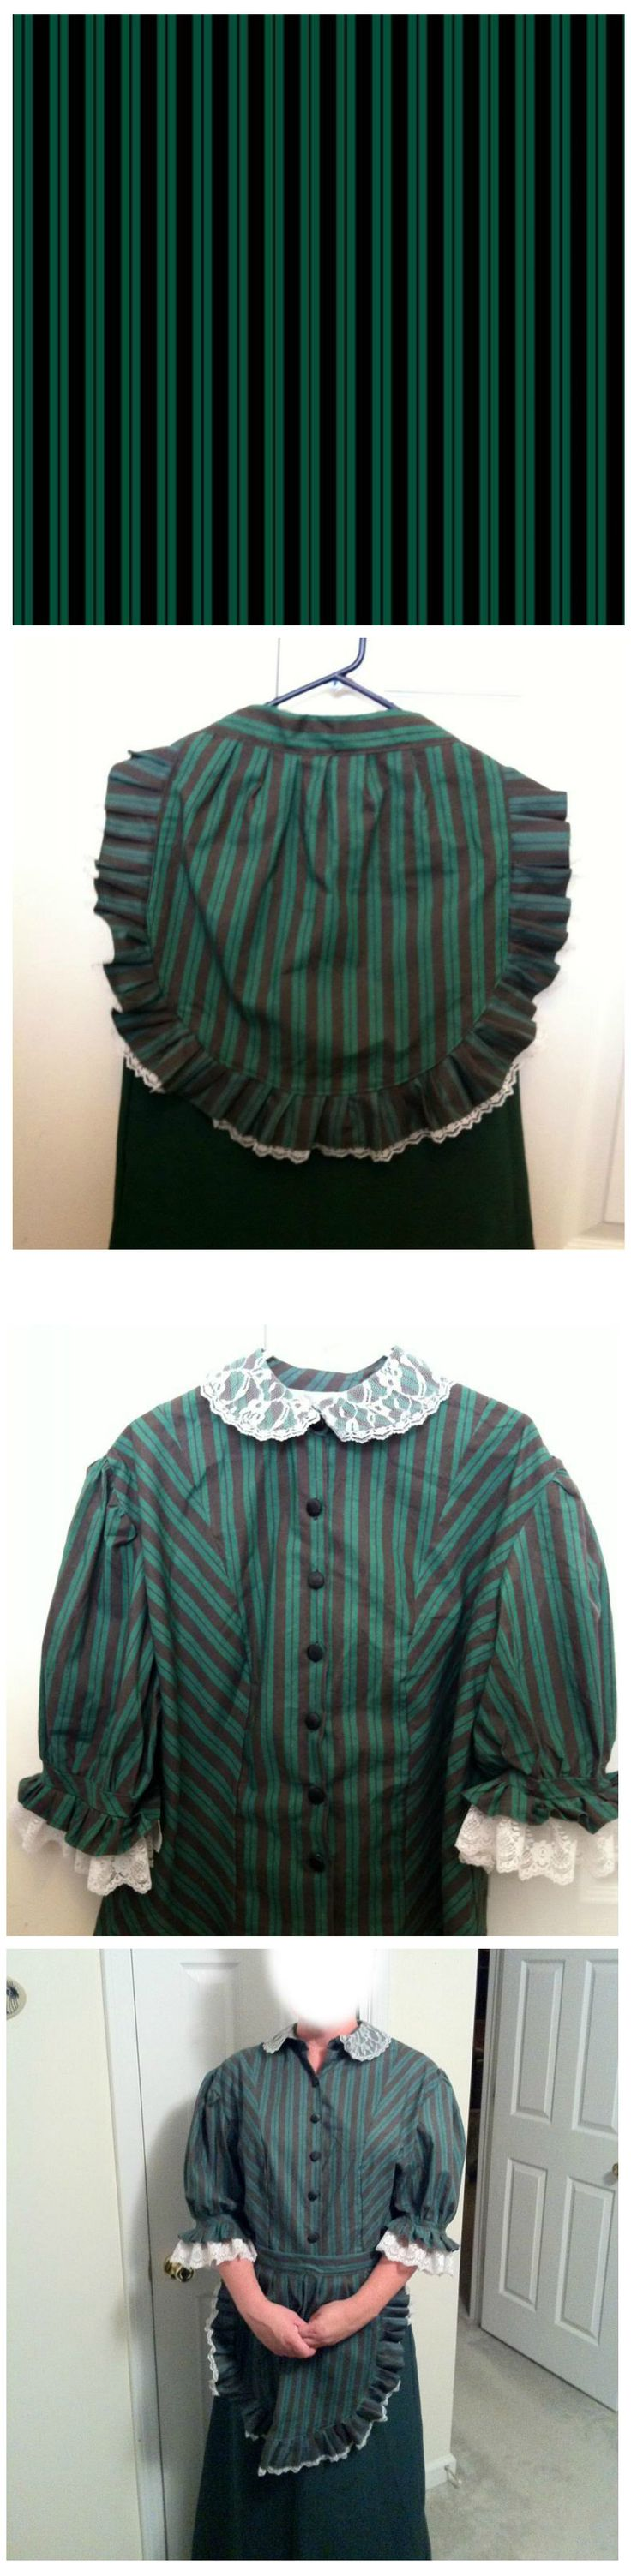 Want to dress like a Haunted Mansion maid...er...cast member?  Here is the green stripe fabric for sale on Spoonflower.com